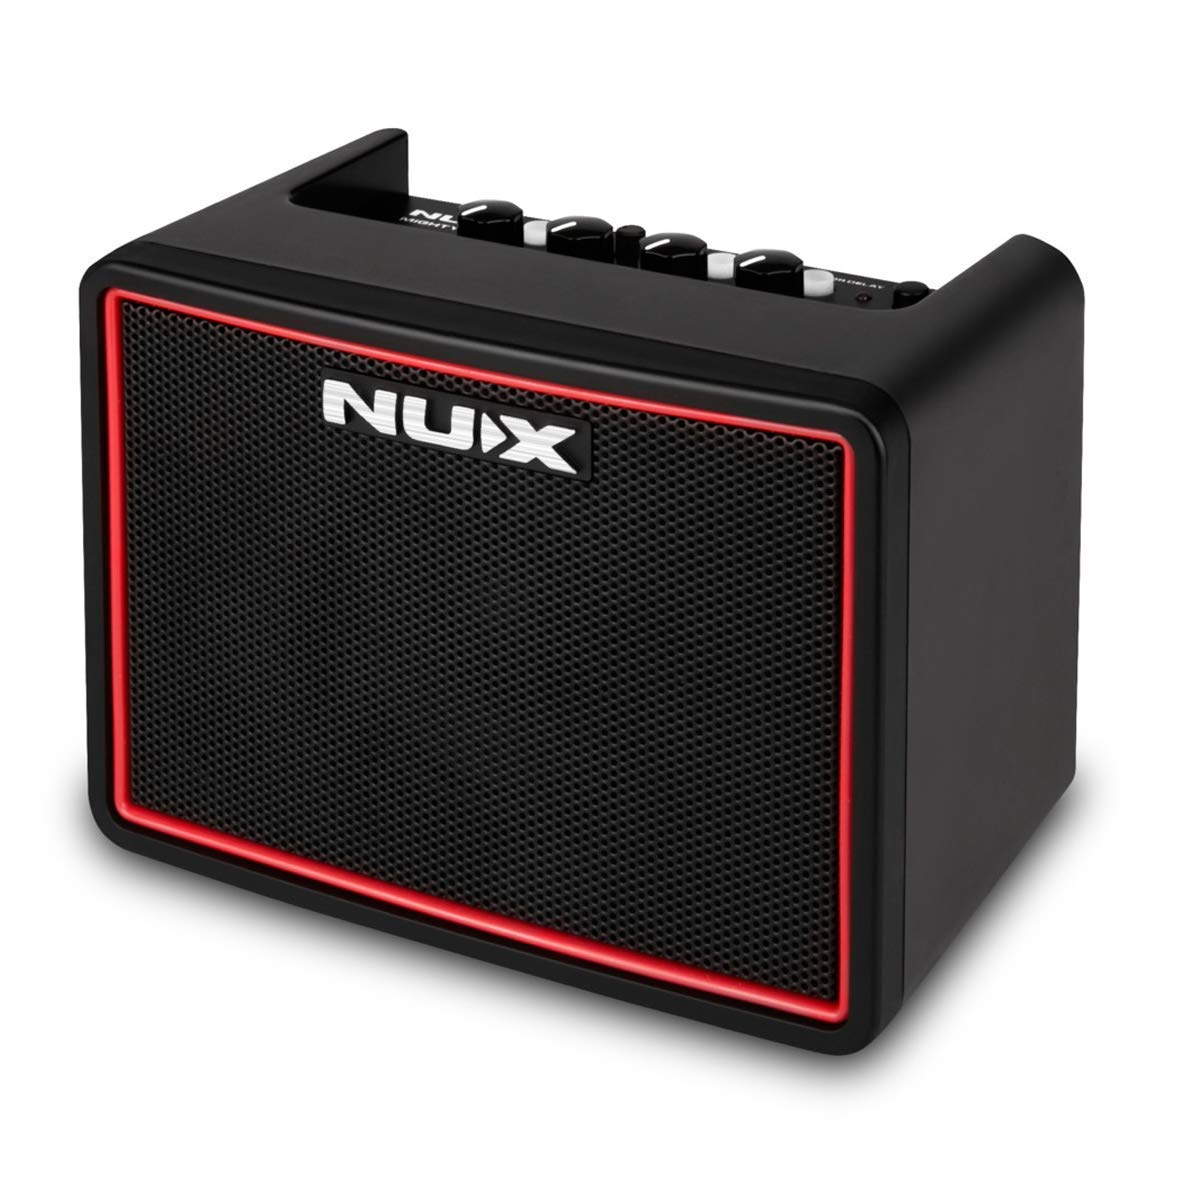 The NUX Mighty Lite BT Mini Amplifier